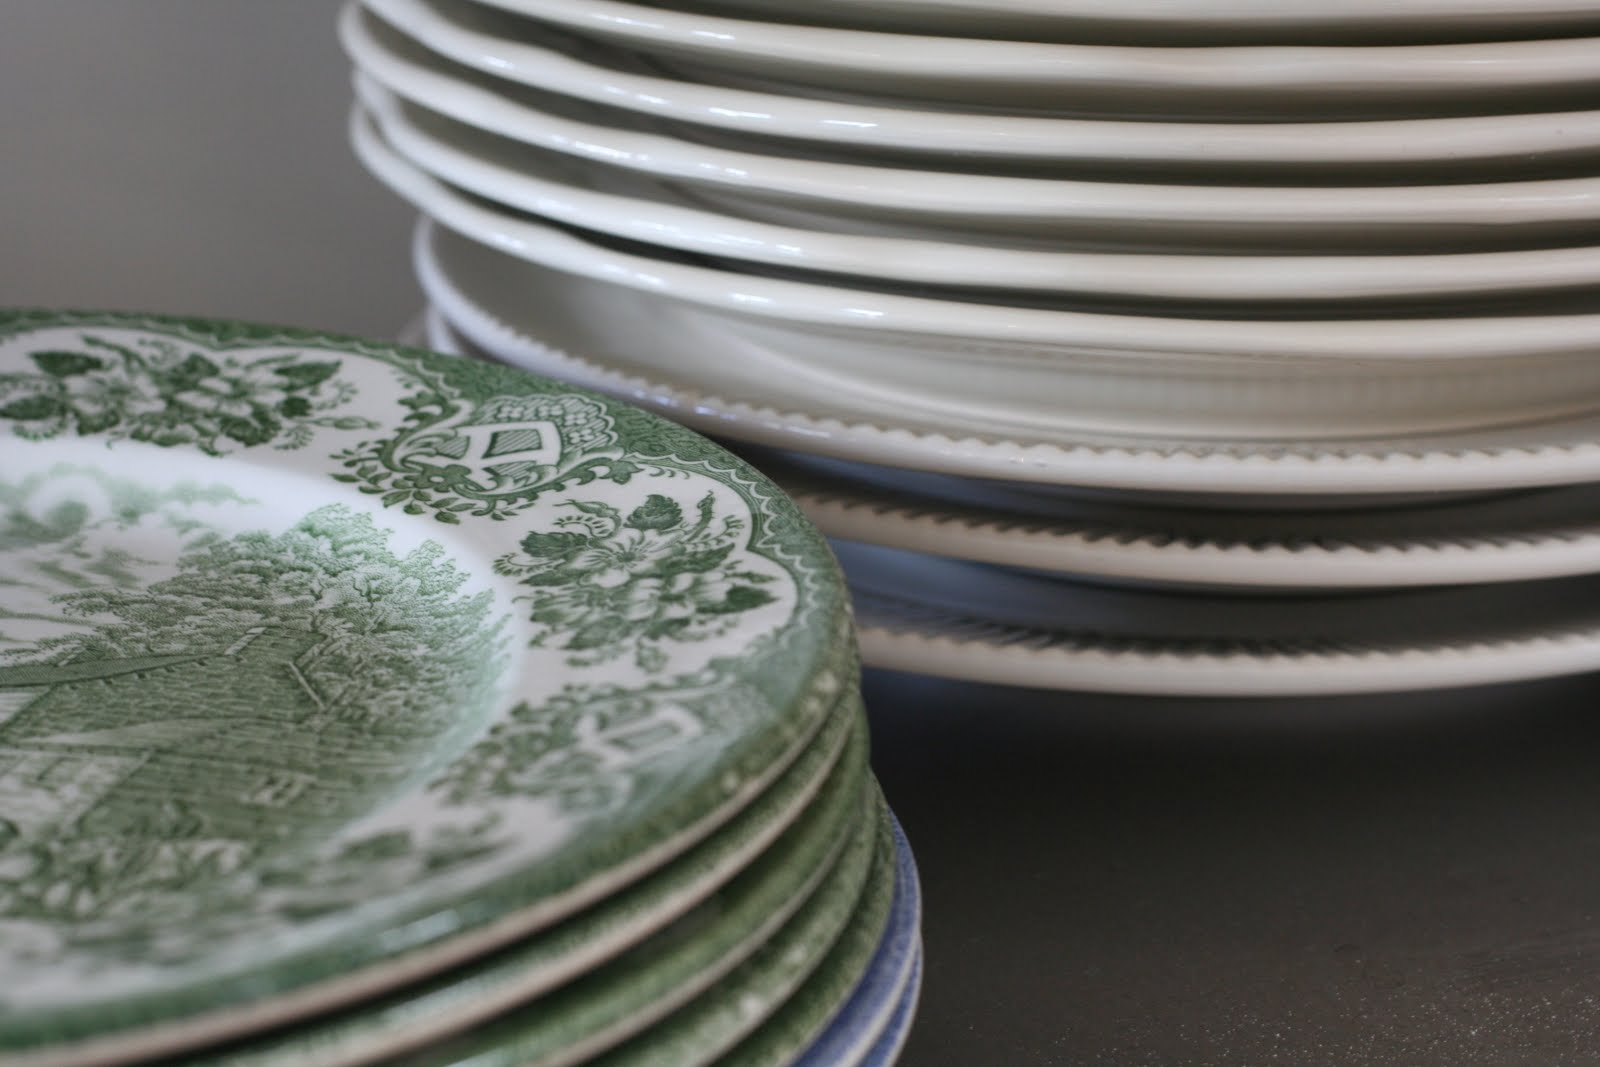 Some Home Truths: When Home is... Old Plates